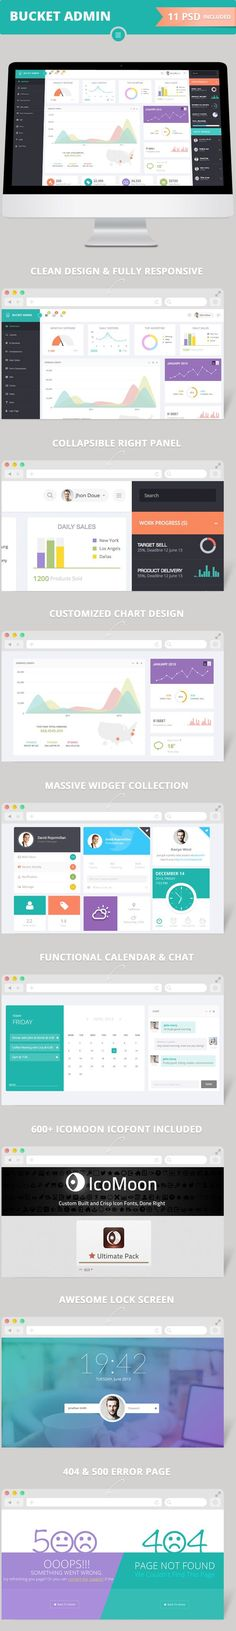 Site Templates - Bucket Admin Bootstrap 3 Responsive Flat Dashboard…